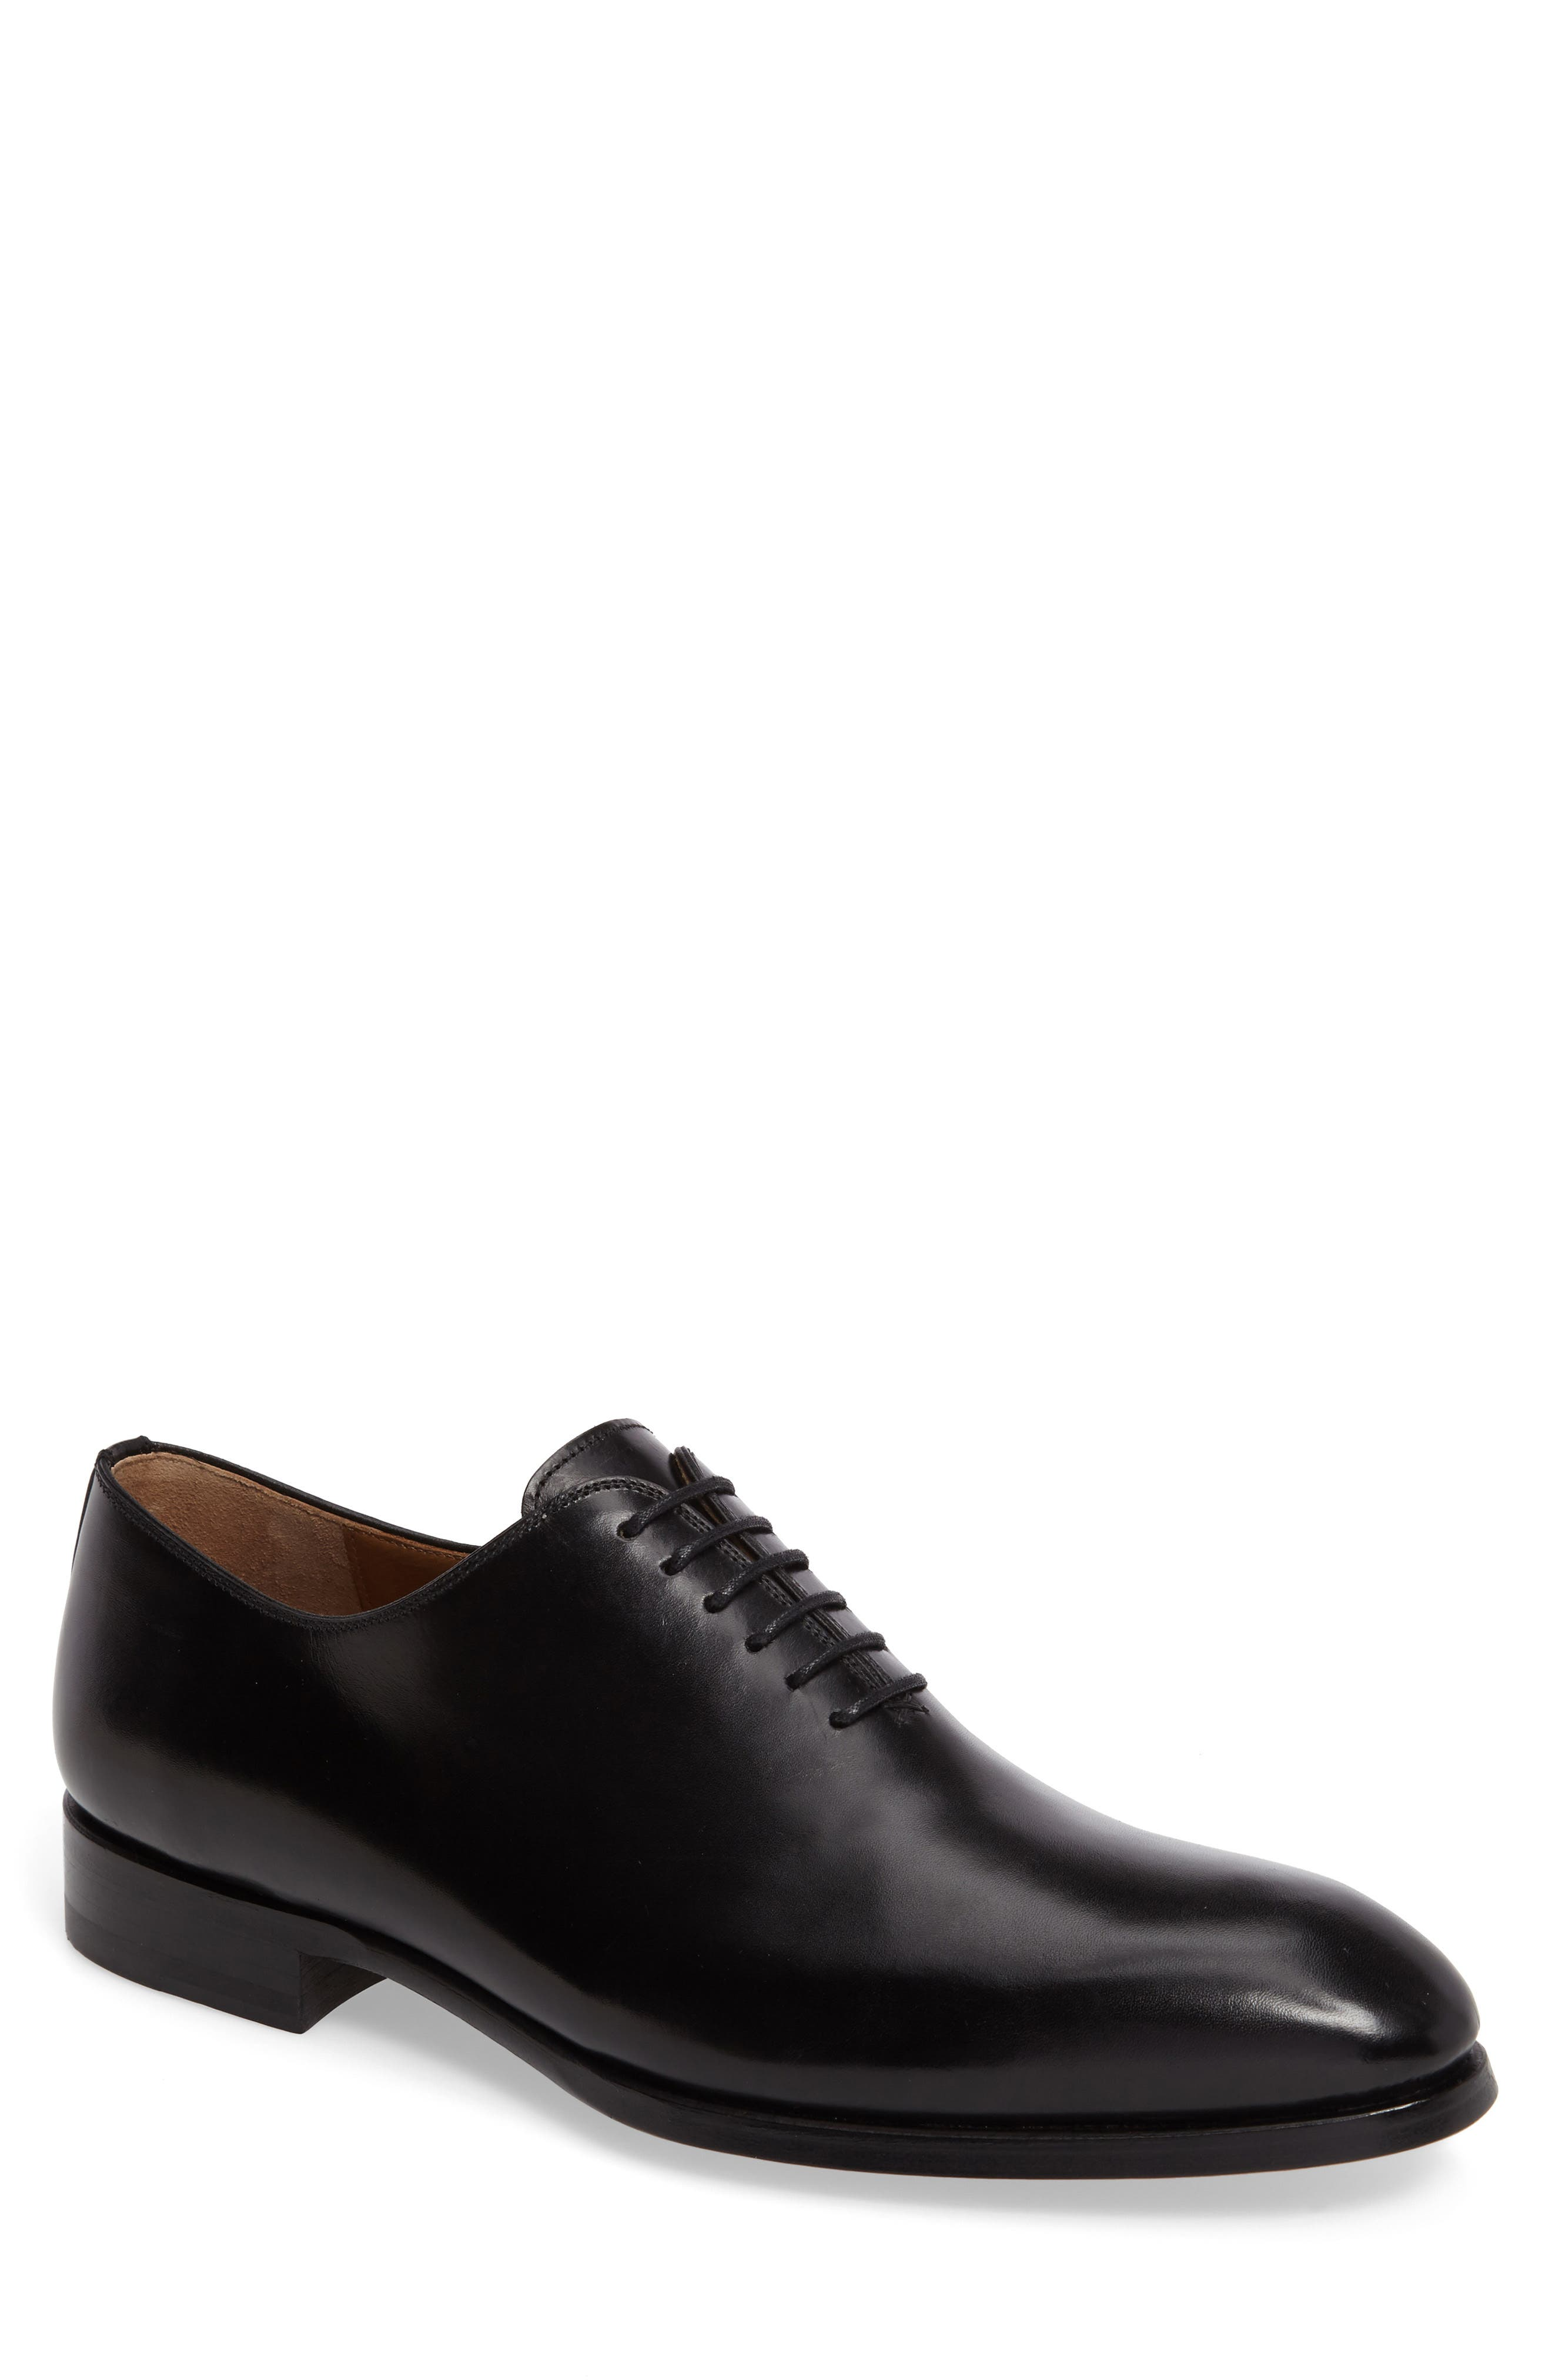 MAGNANNI Montay Wholecut Oxford, Main, color, BLACK LEATHER